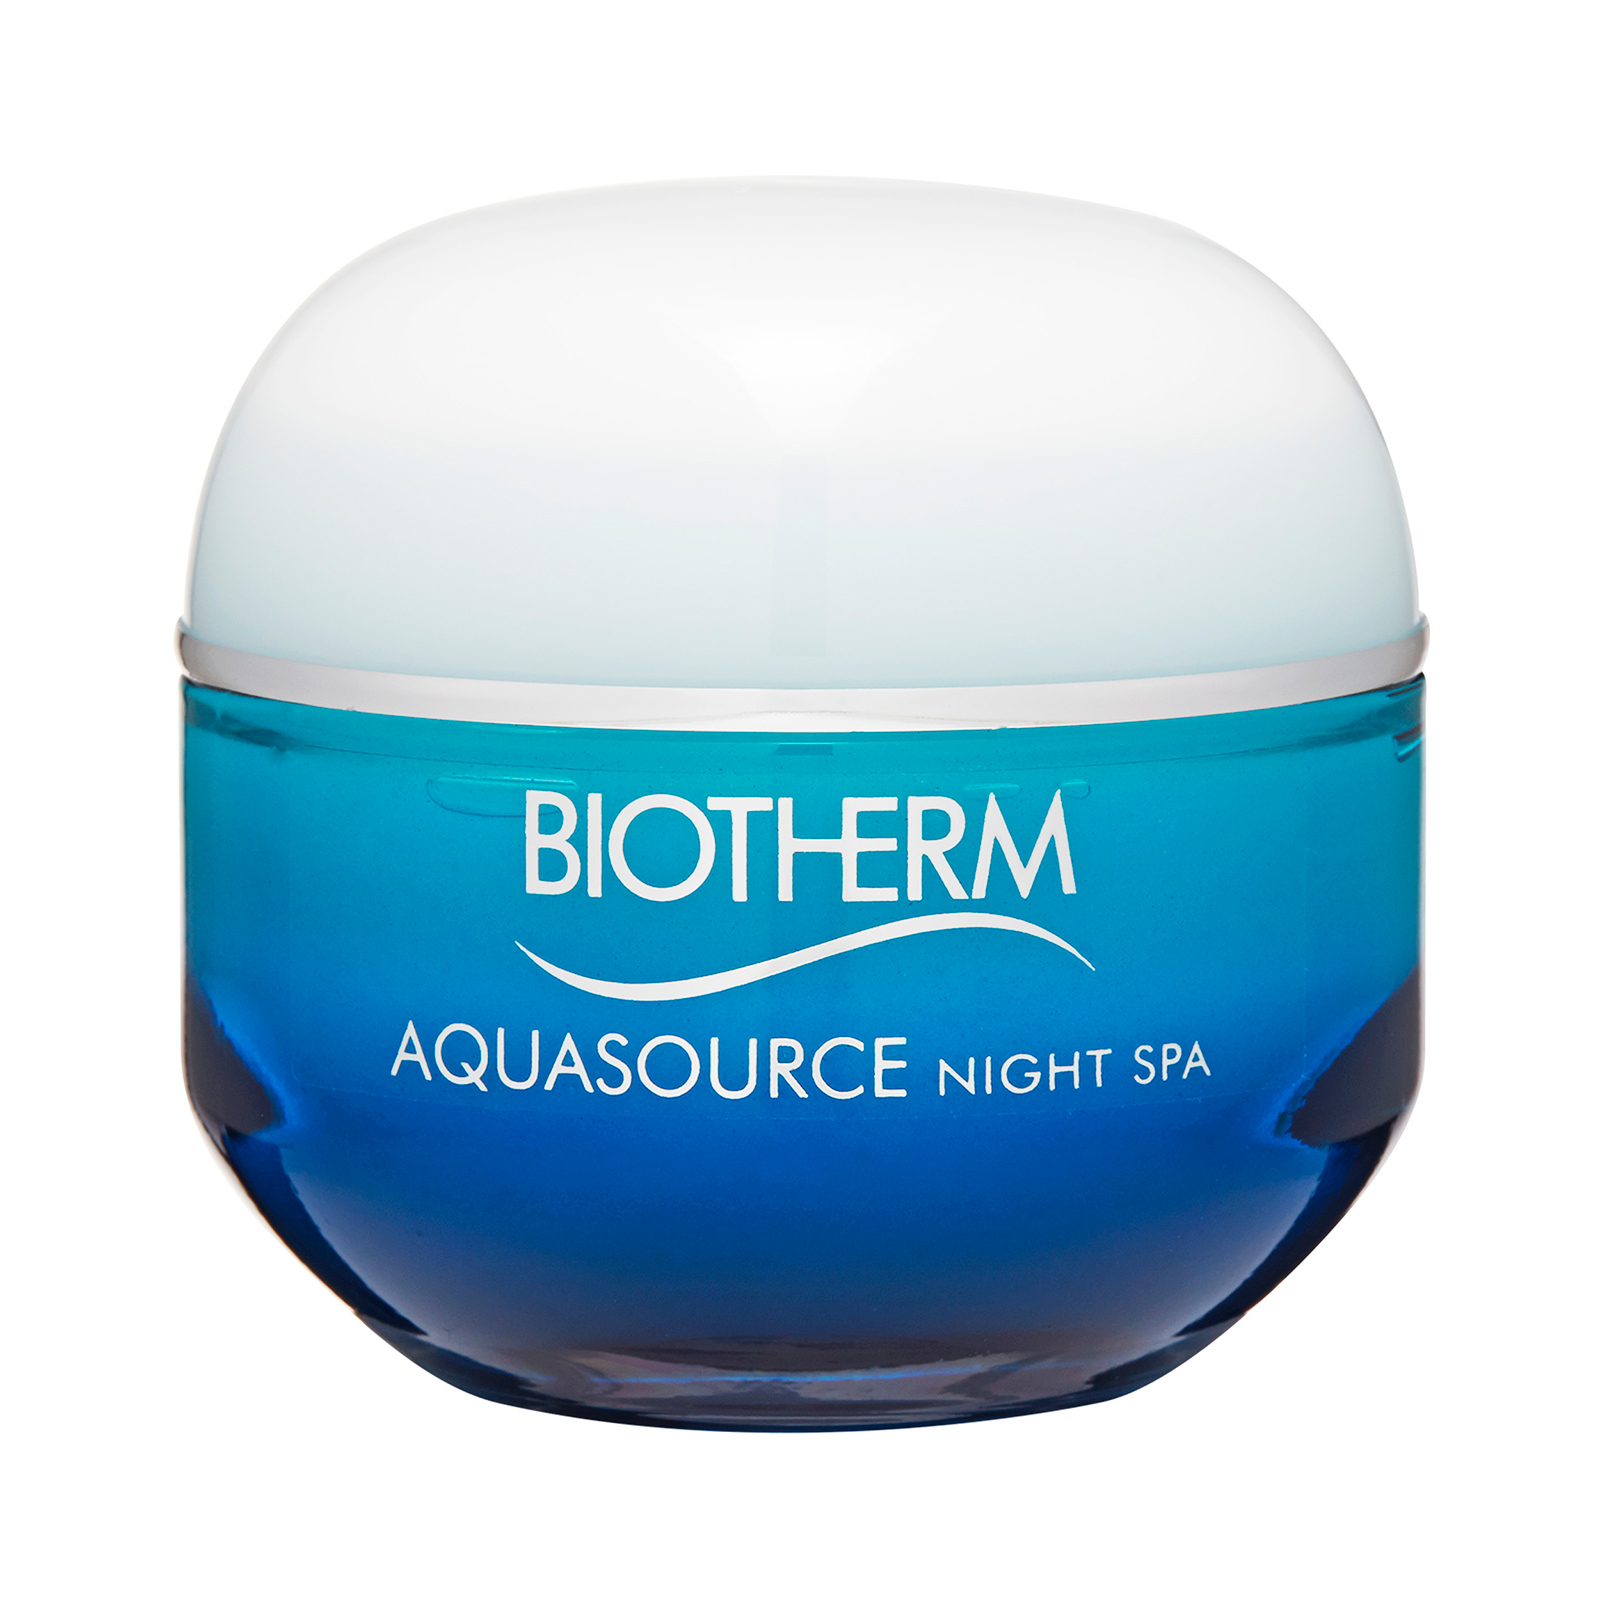 Biotherm Aquasource Night Spa (All Skin Types) 1.69oz, 50ml from Cosme-De.com